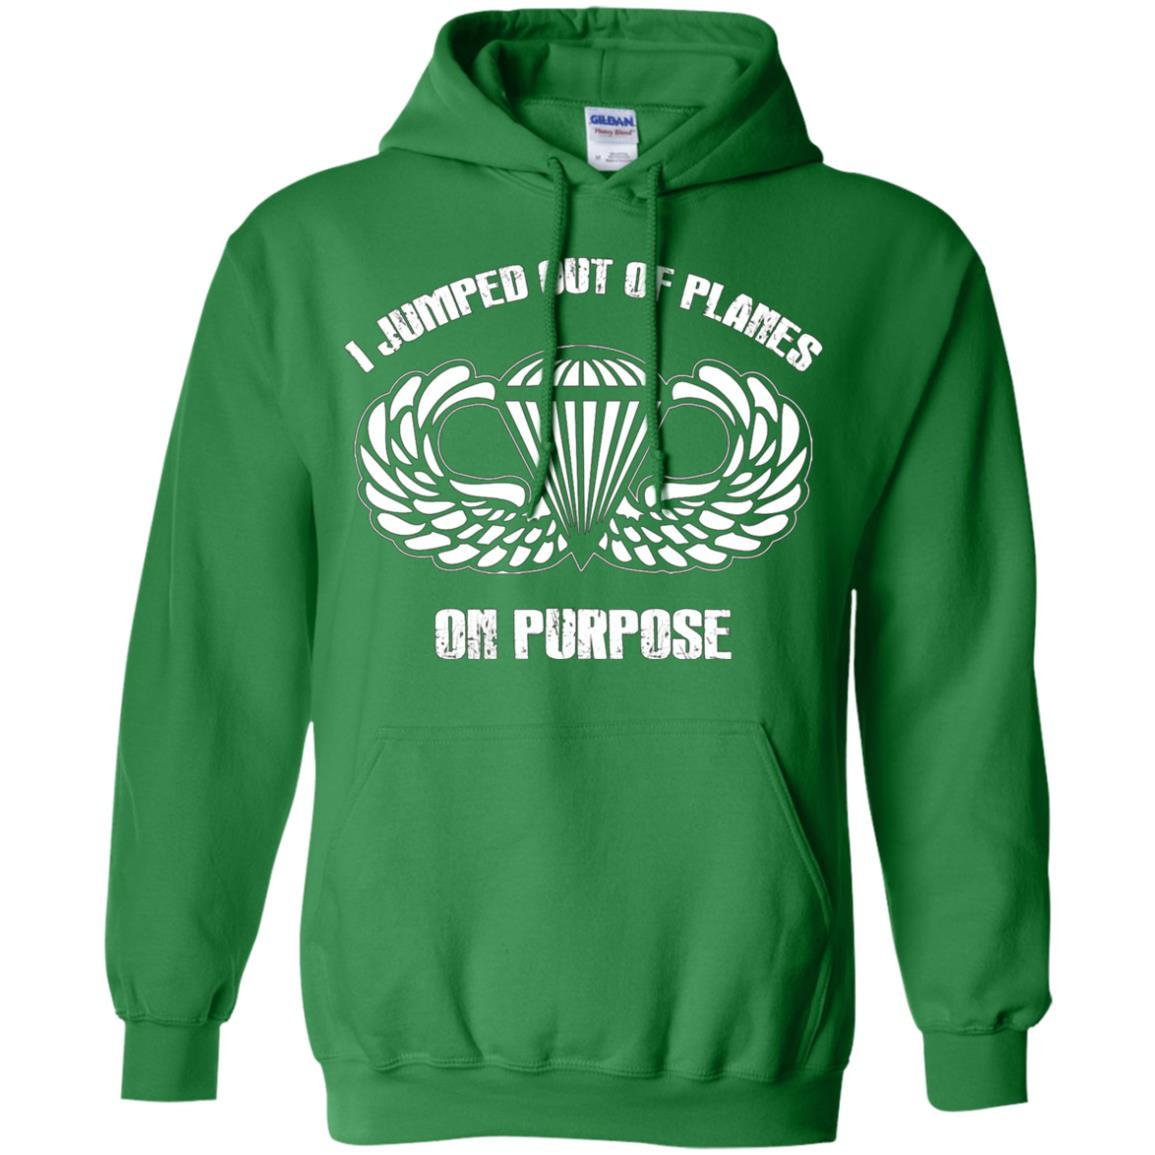 I jumped out of planes on purpose, Airborne - Pullover Hoodie Irish Green / 5XL